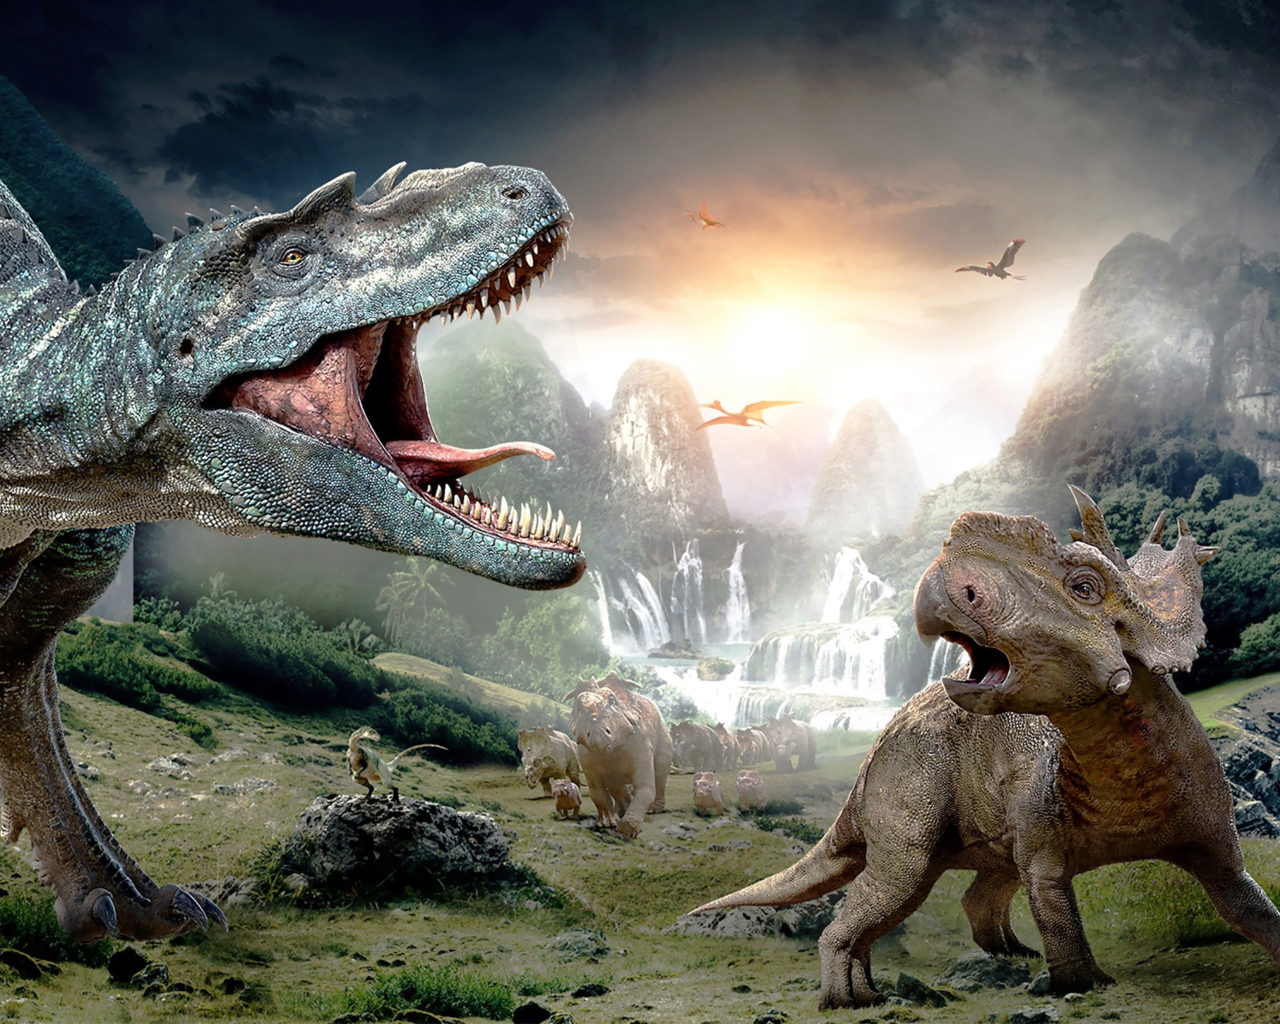 Live Wallpaper For Pc Free Download Hd Dinosaurs Wallpapers Hd Download Wallpapers13 Com